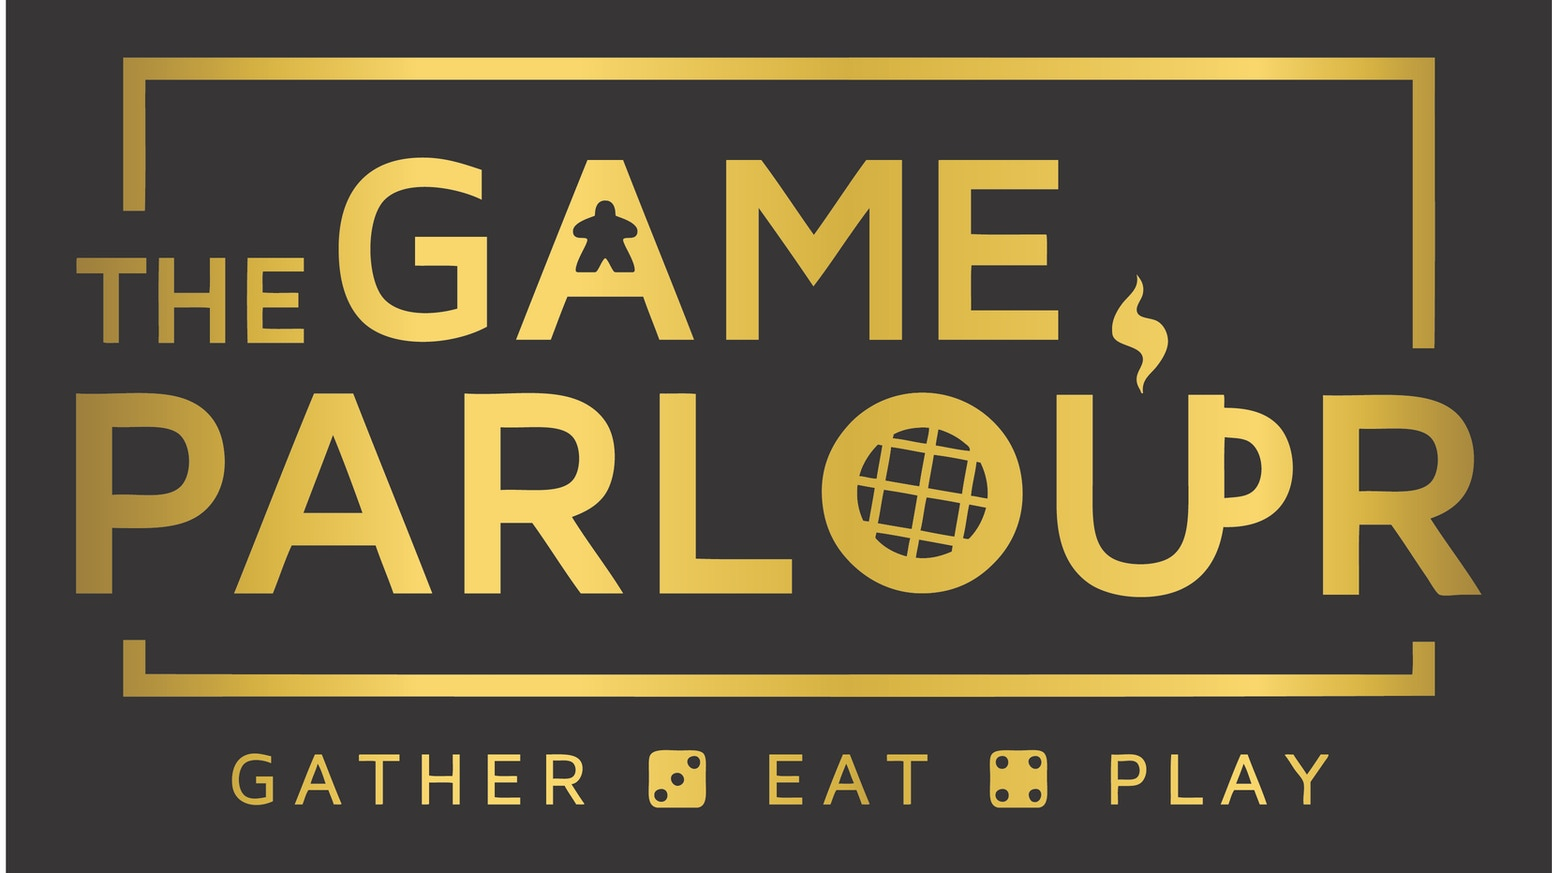 Welcome to The Game Parlour, a place for people of all ages to unplug and engage with each other over board games and food.